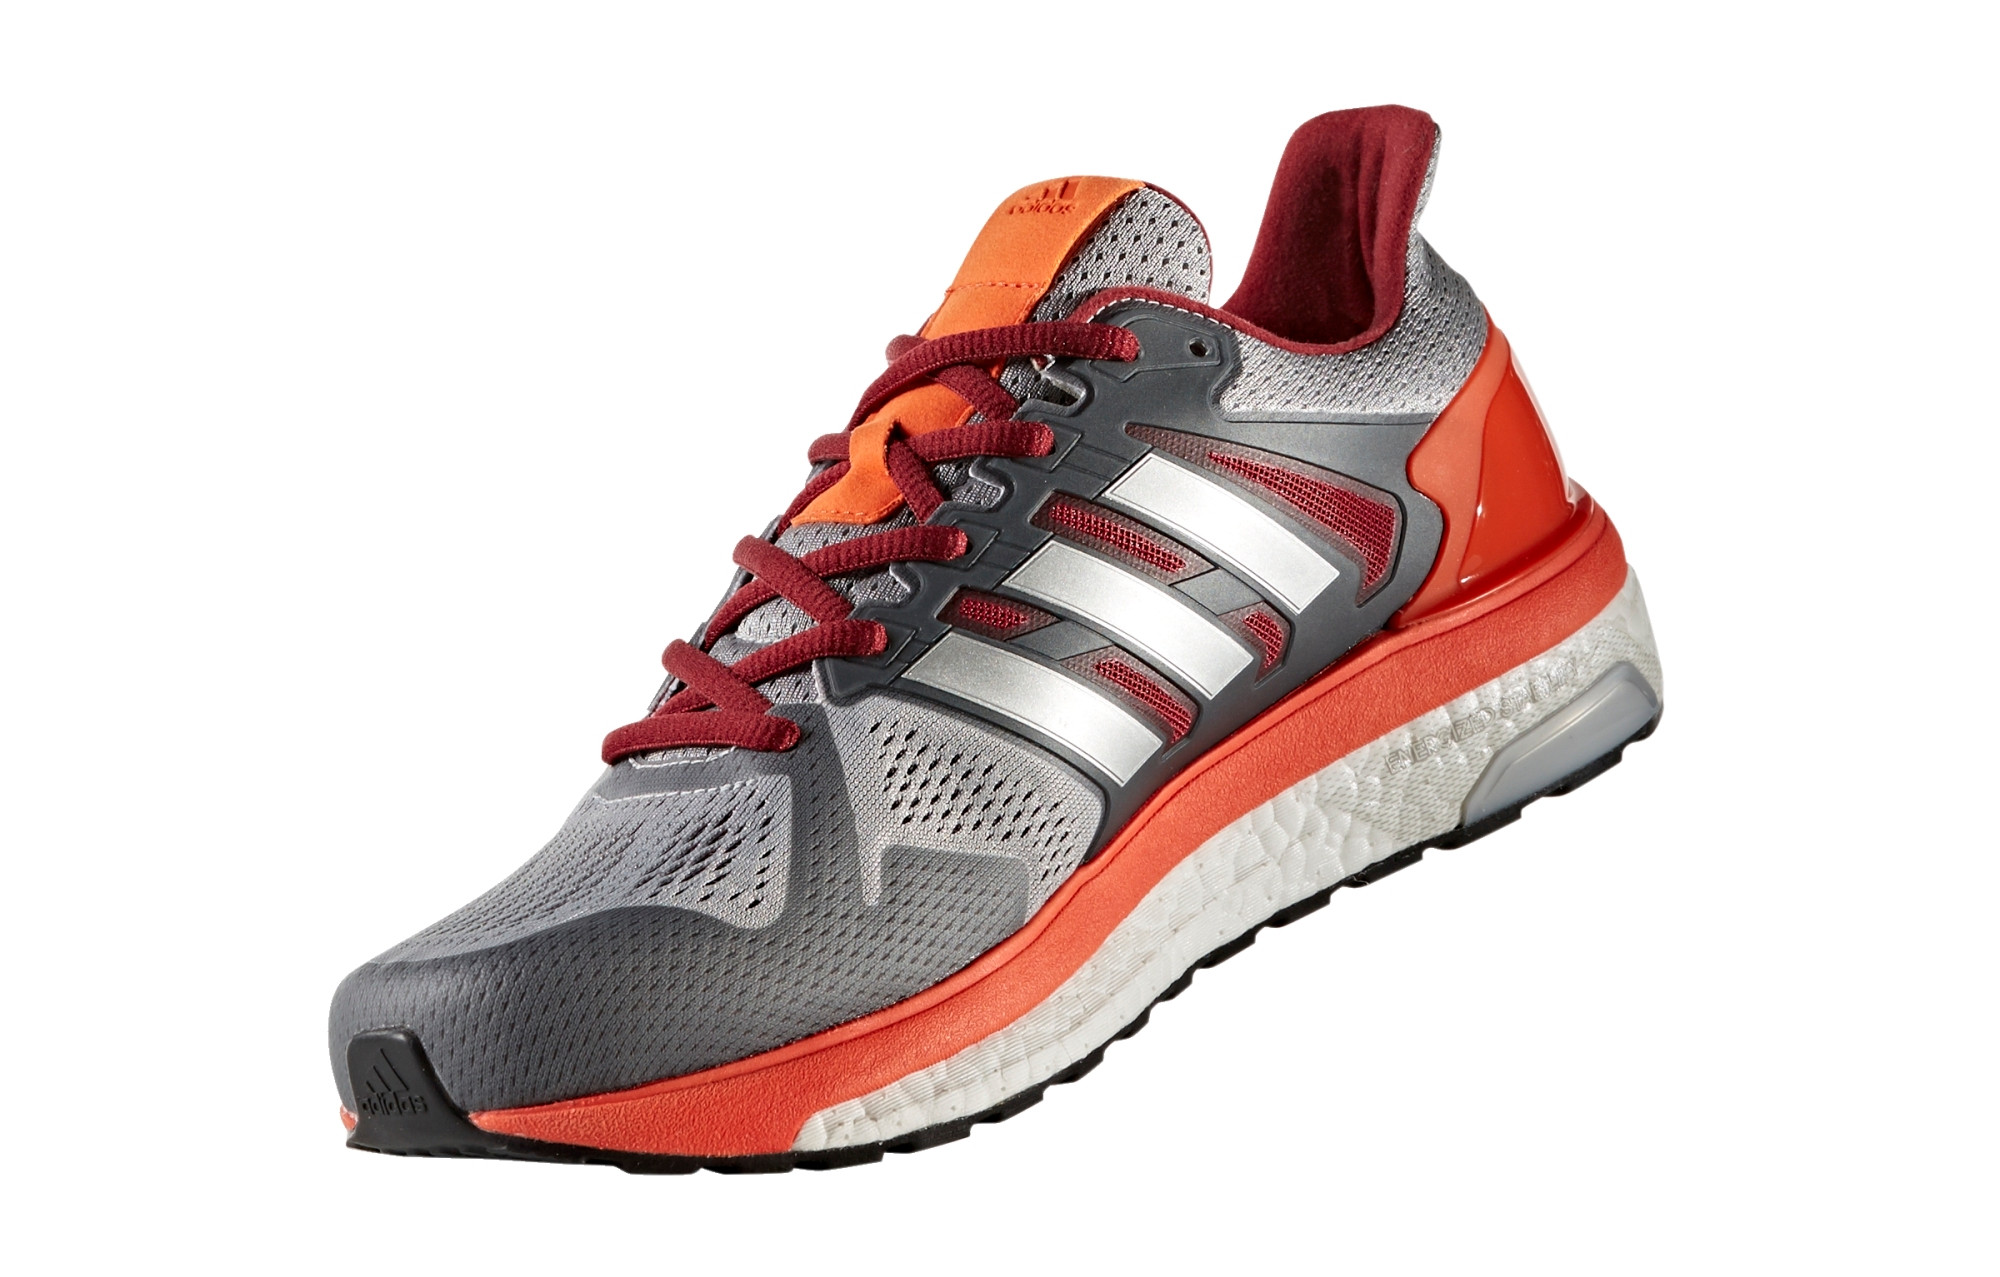 De Adidas Running Orange Chaussures Gris St Supernova lKcT1FJ